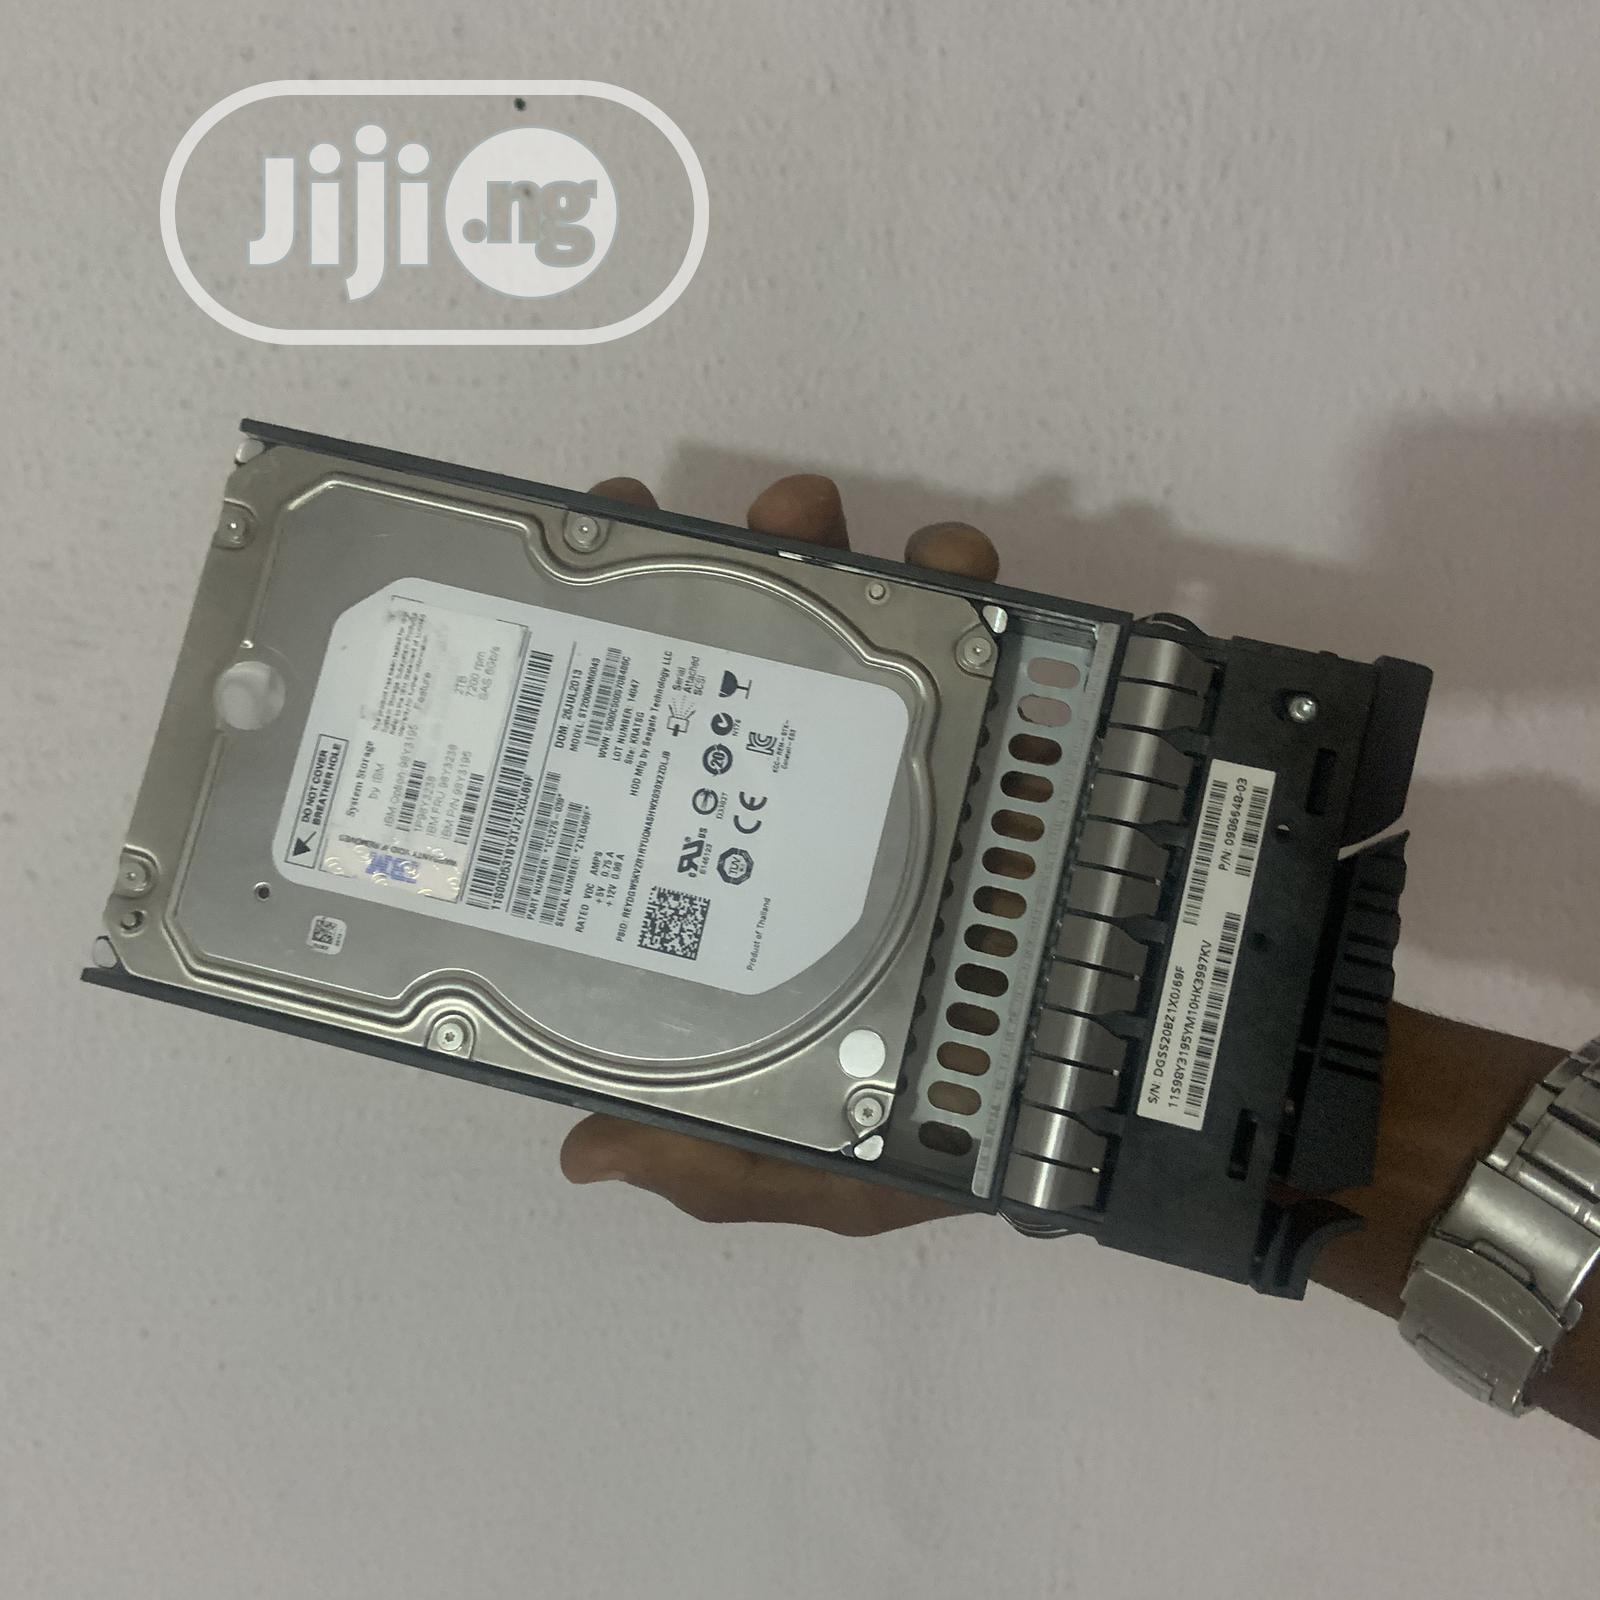 2TB Server Hard Drives | Computer Hardware for sale in Ikeja, Lagos State, Nigeria